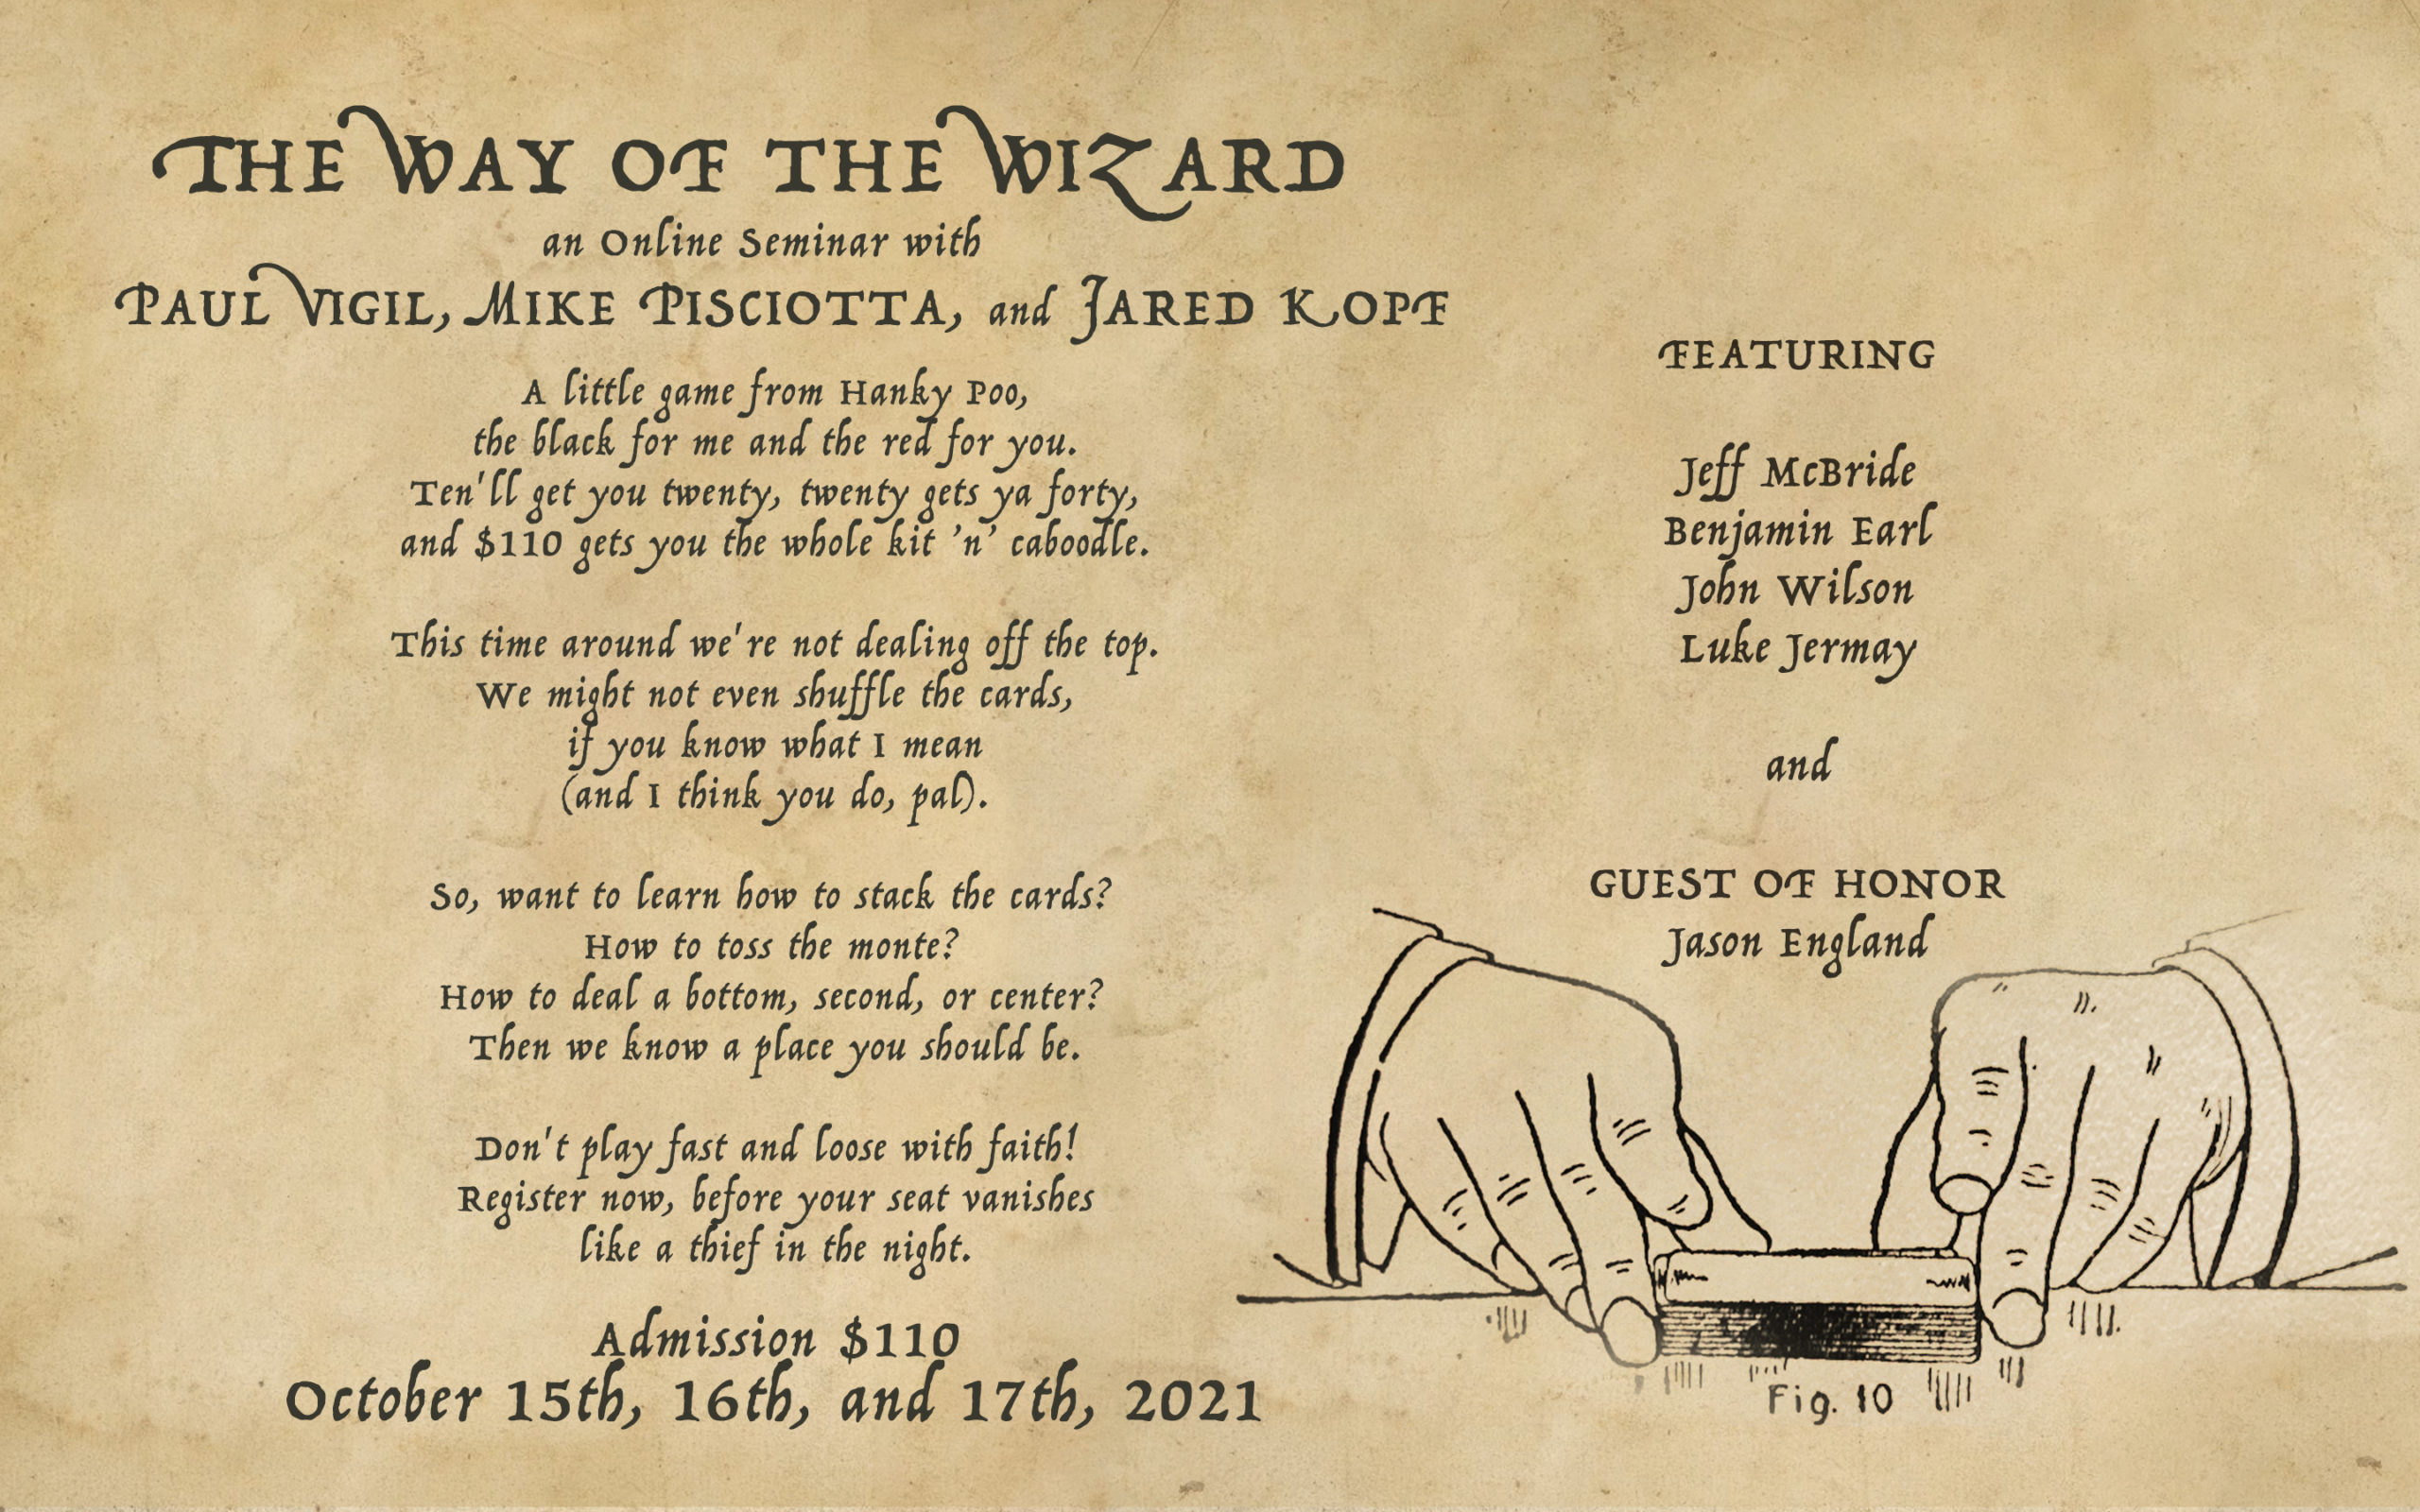 The Way of the Wizard IV